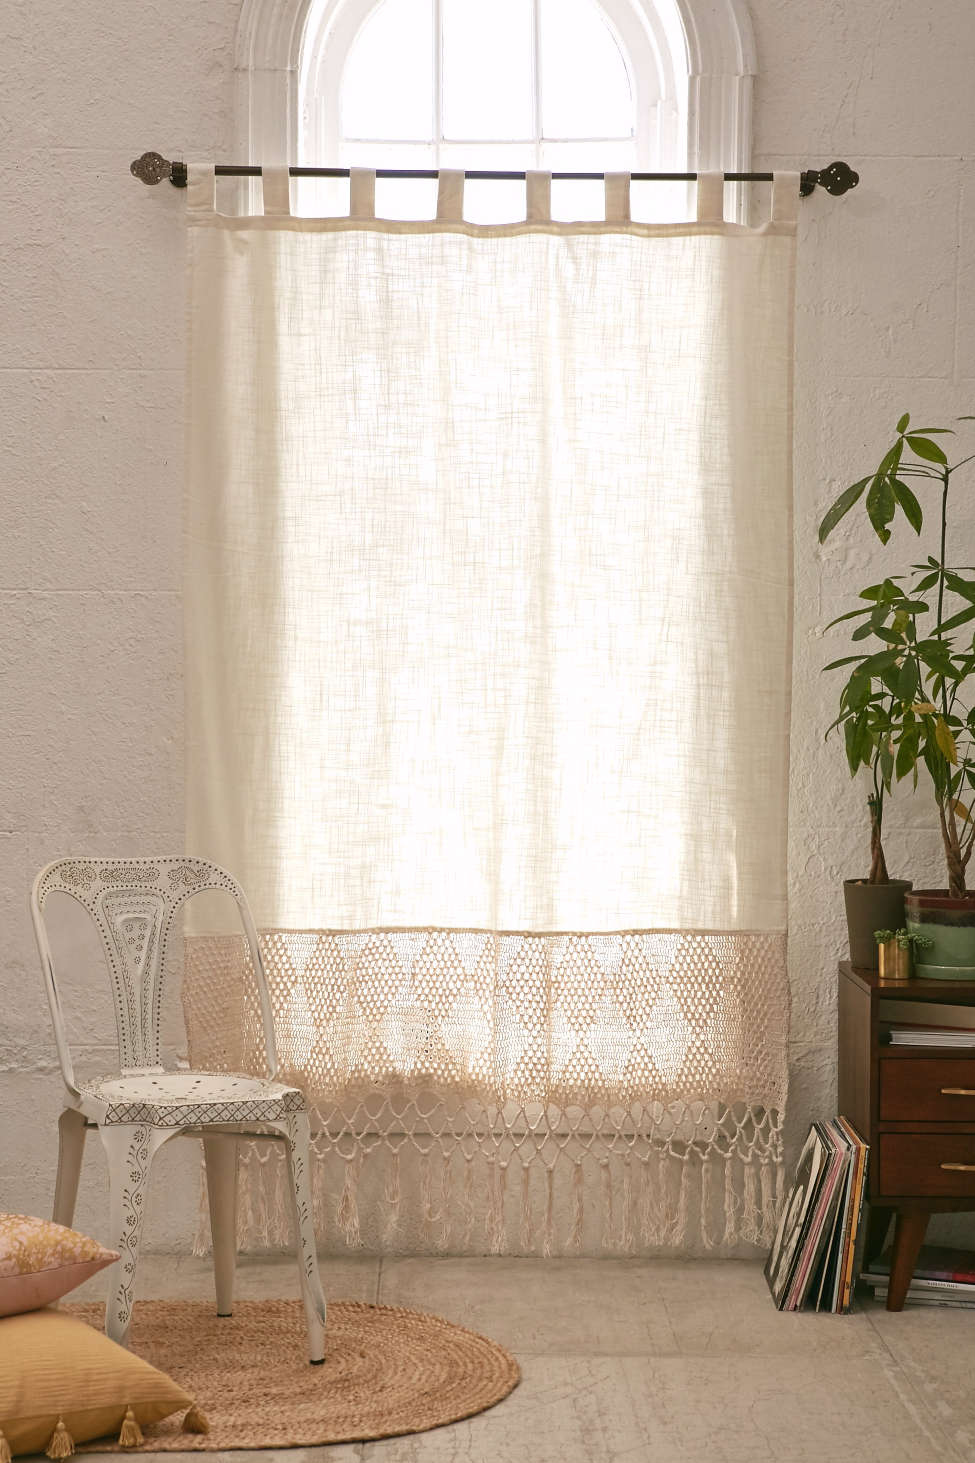 Slide View: 1: Delilah Crochet Curtain